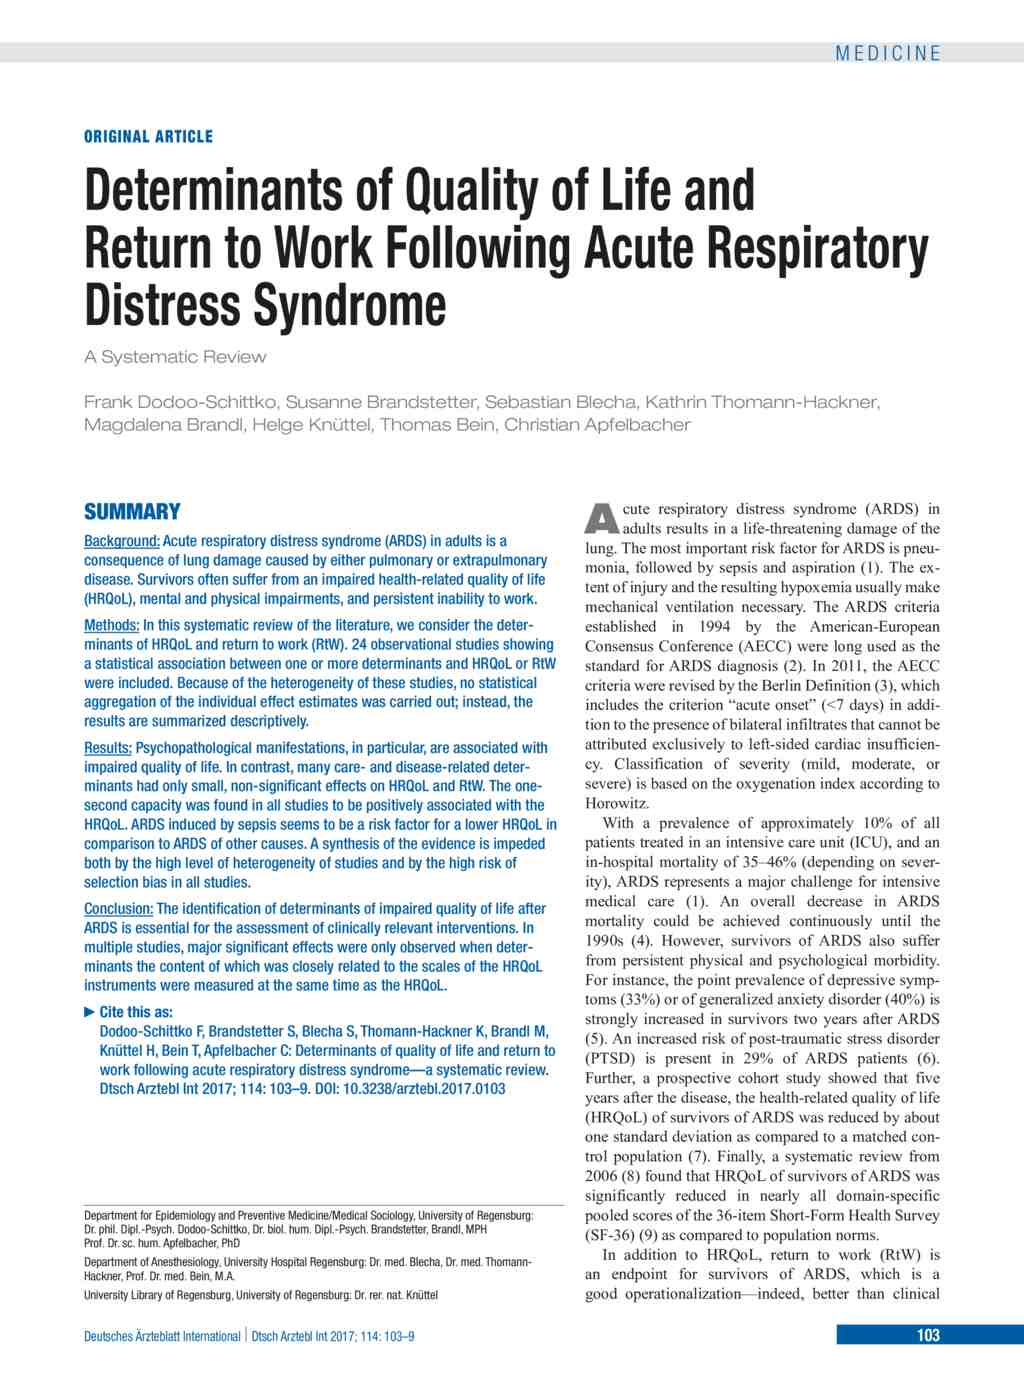 Determinants of Quality of Life and Return to Work Following